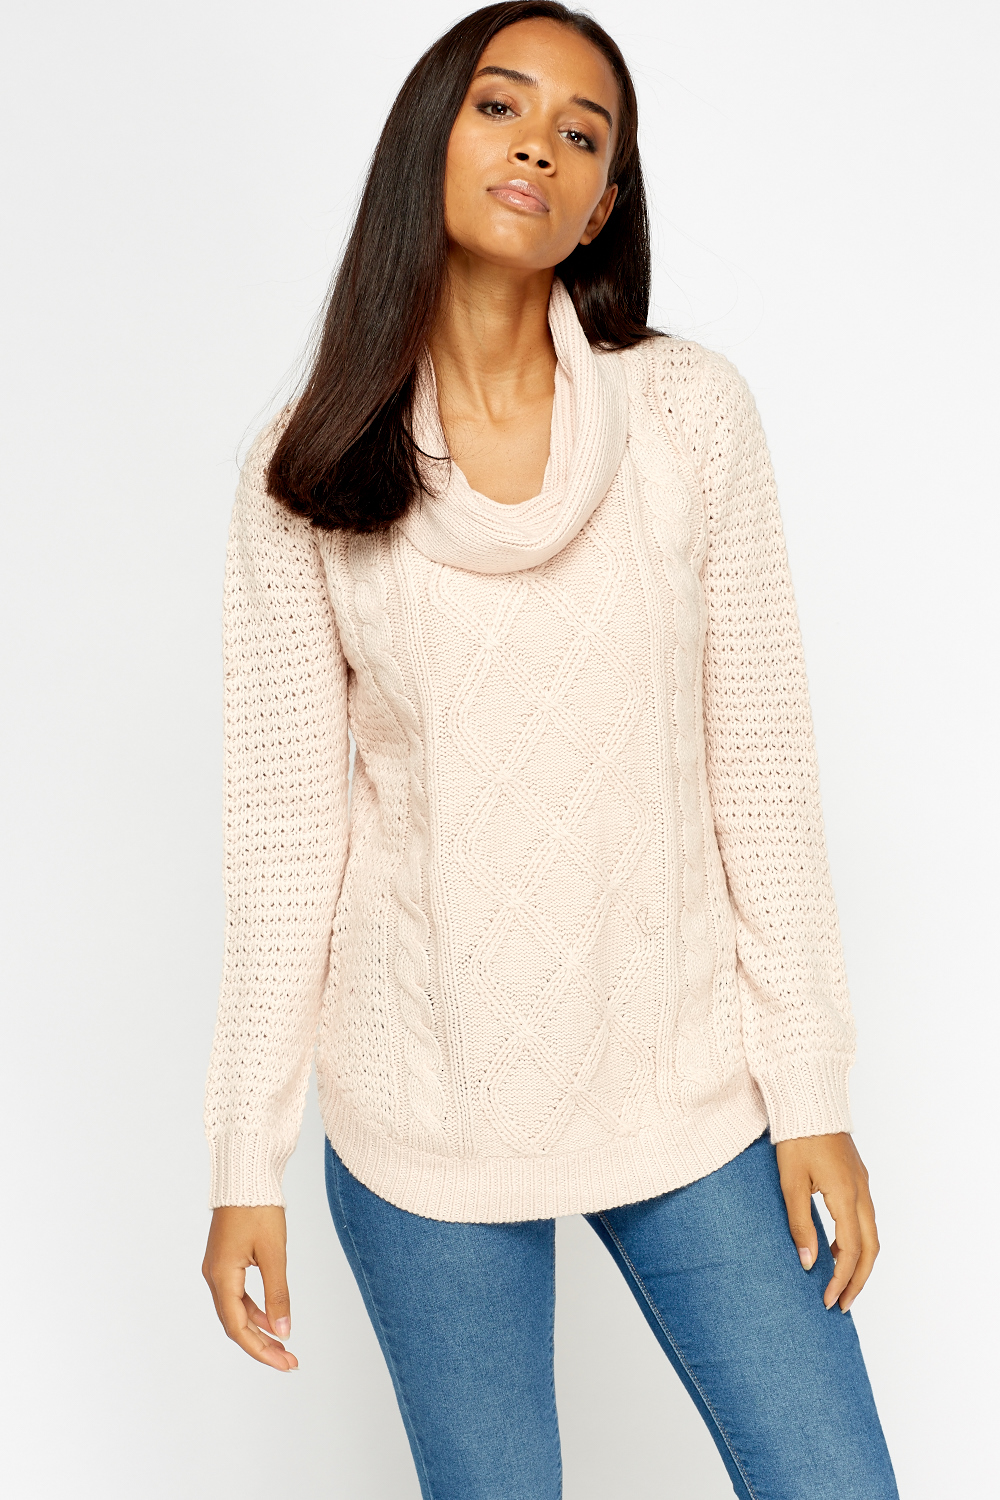 Cowl Neck Knitted Jumper - Just ?5